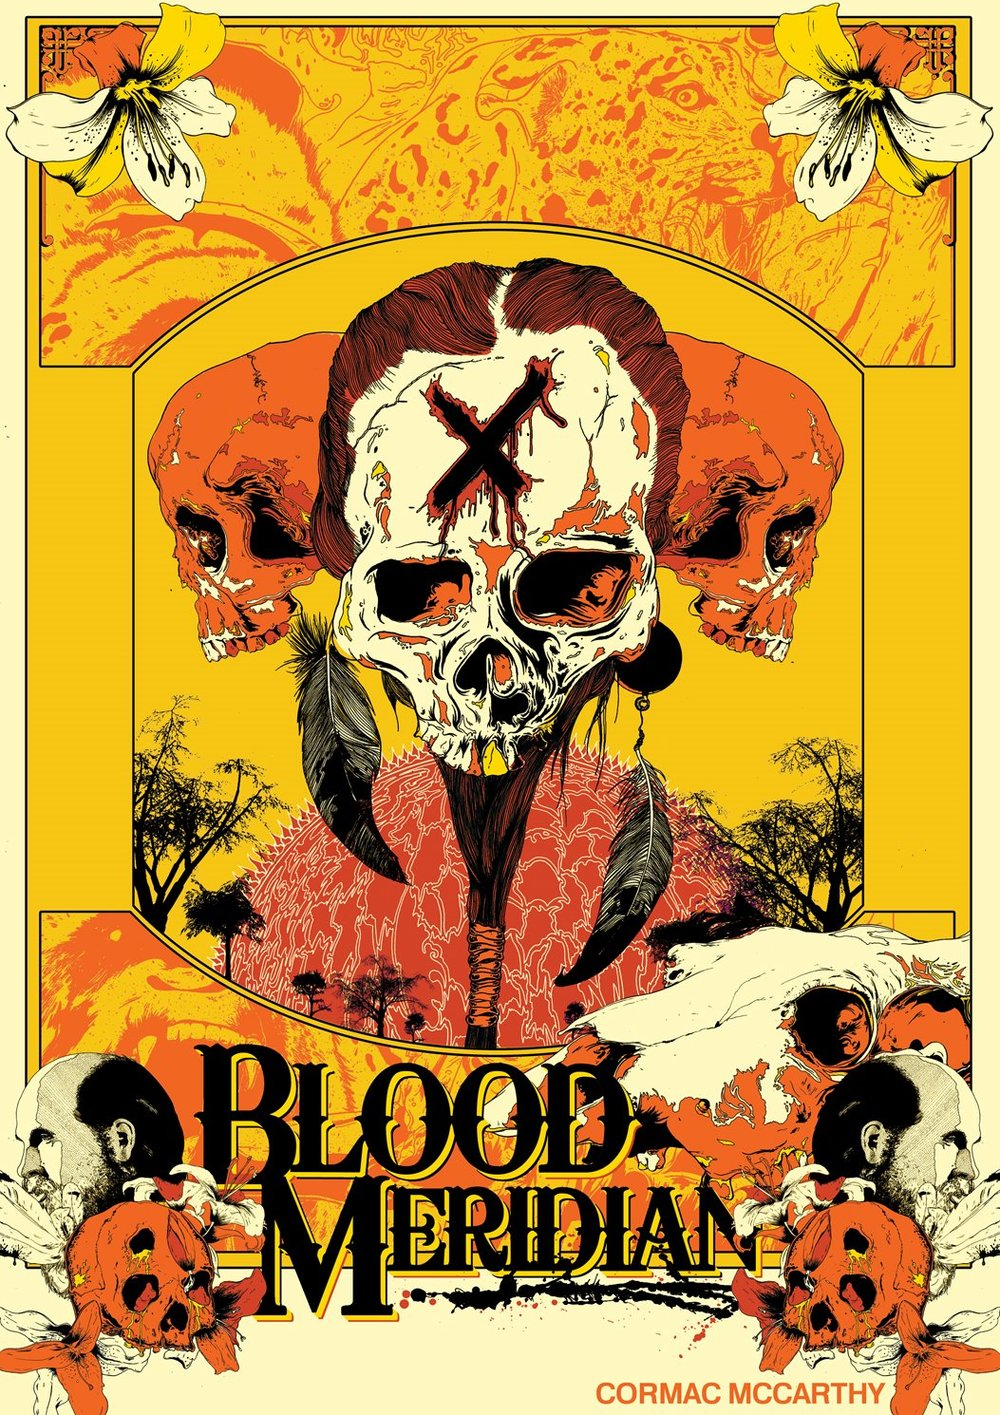 img - Blood Meridian (or the Evening Redness in the West) by Cormac McCarthy (1985)